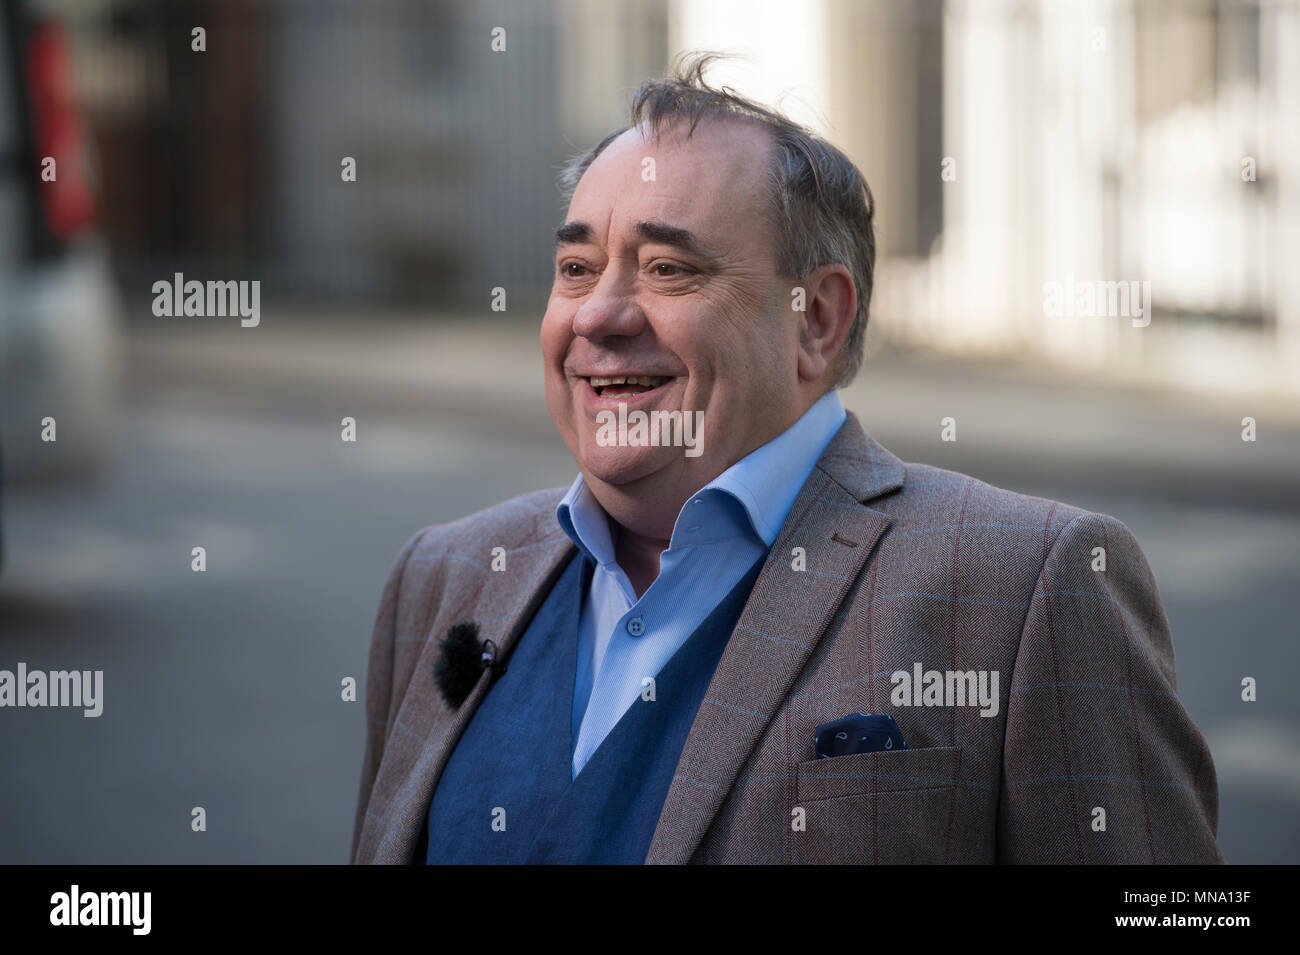 Former First Minister of Scotland Alex Salmond in Downing Street fronting a media broadcast on 15 May 2018 - Stock Image